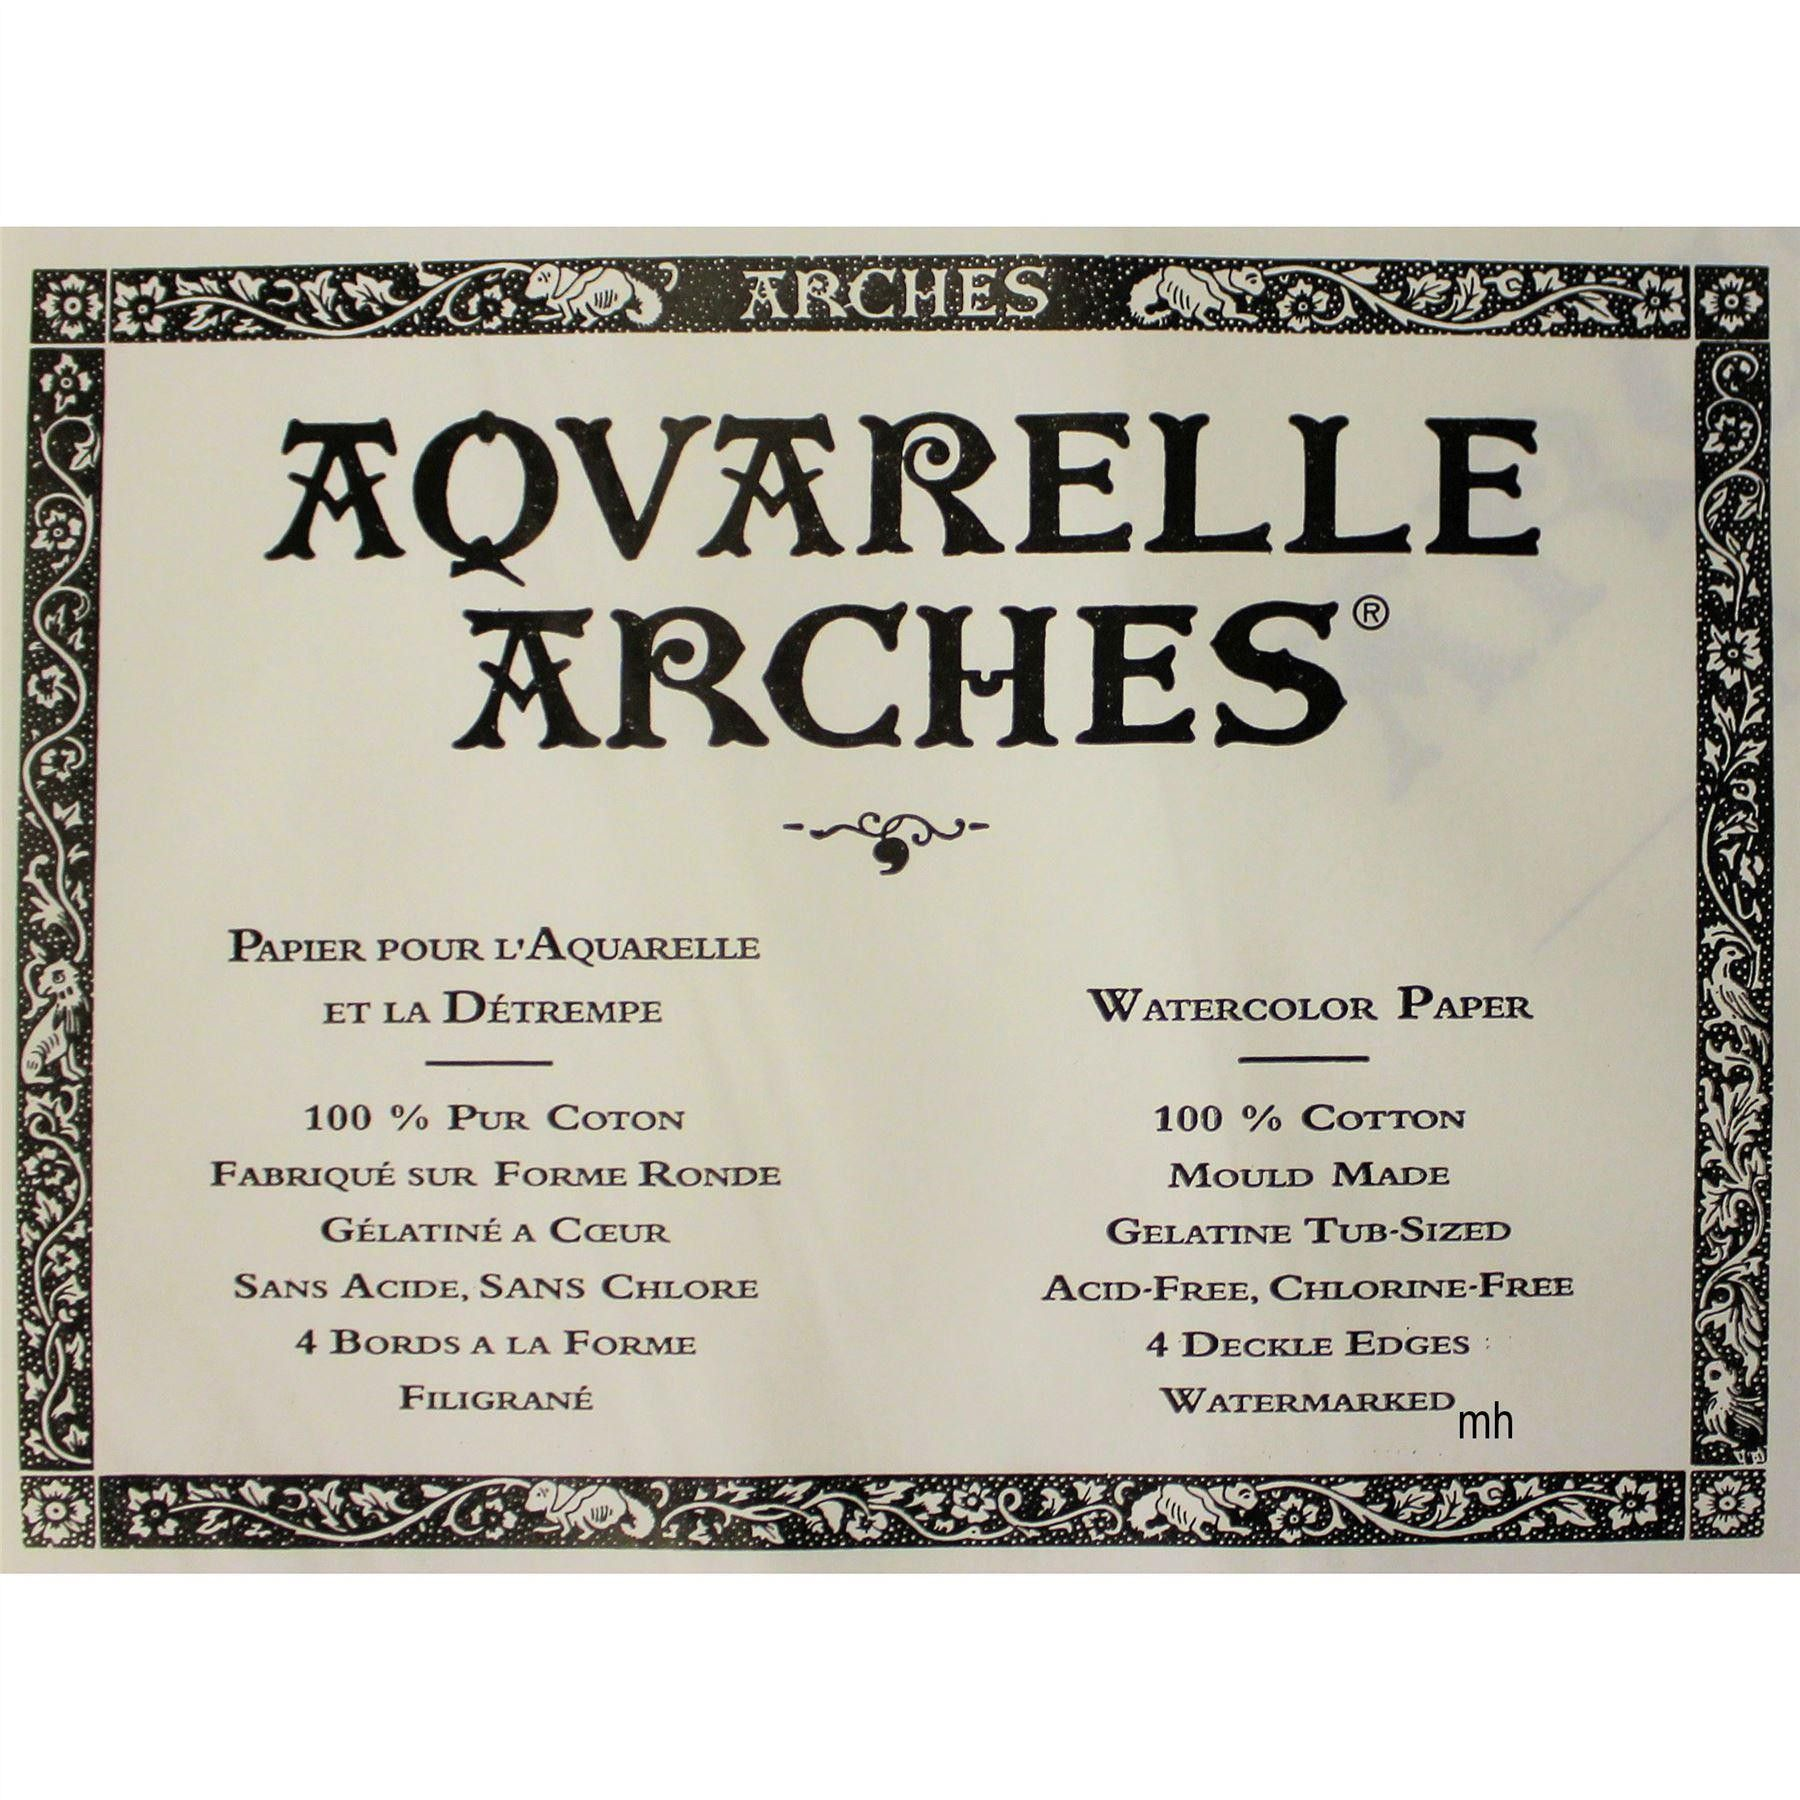 Canson 640gsm Aquarelle Arches Watercolour 2 Sheets Cold Pressed